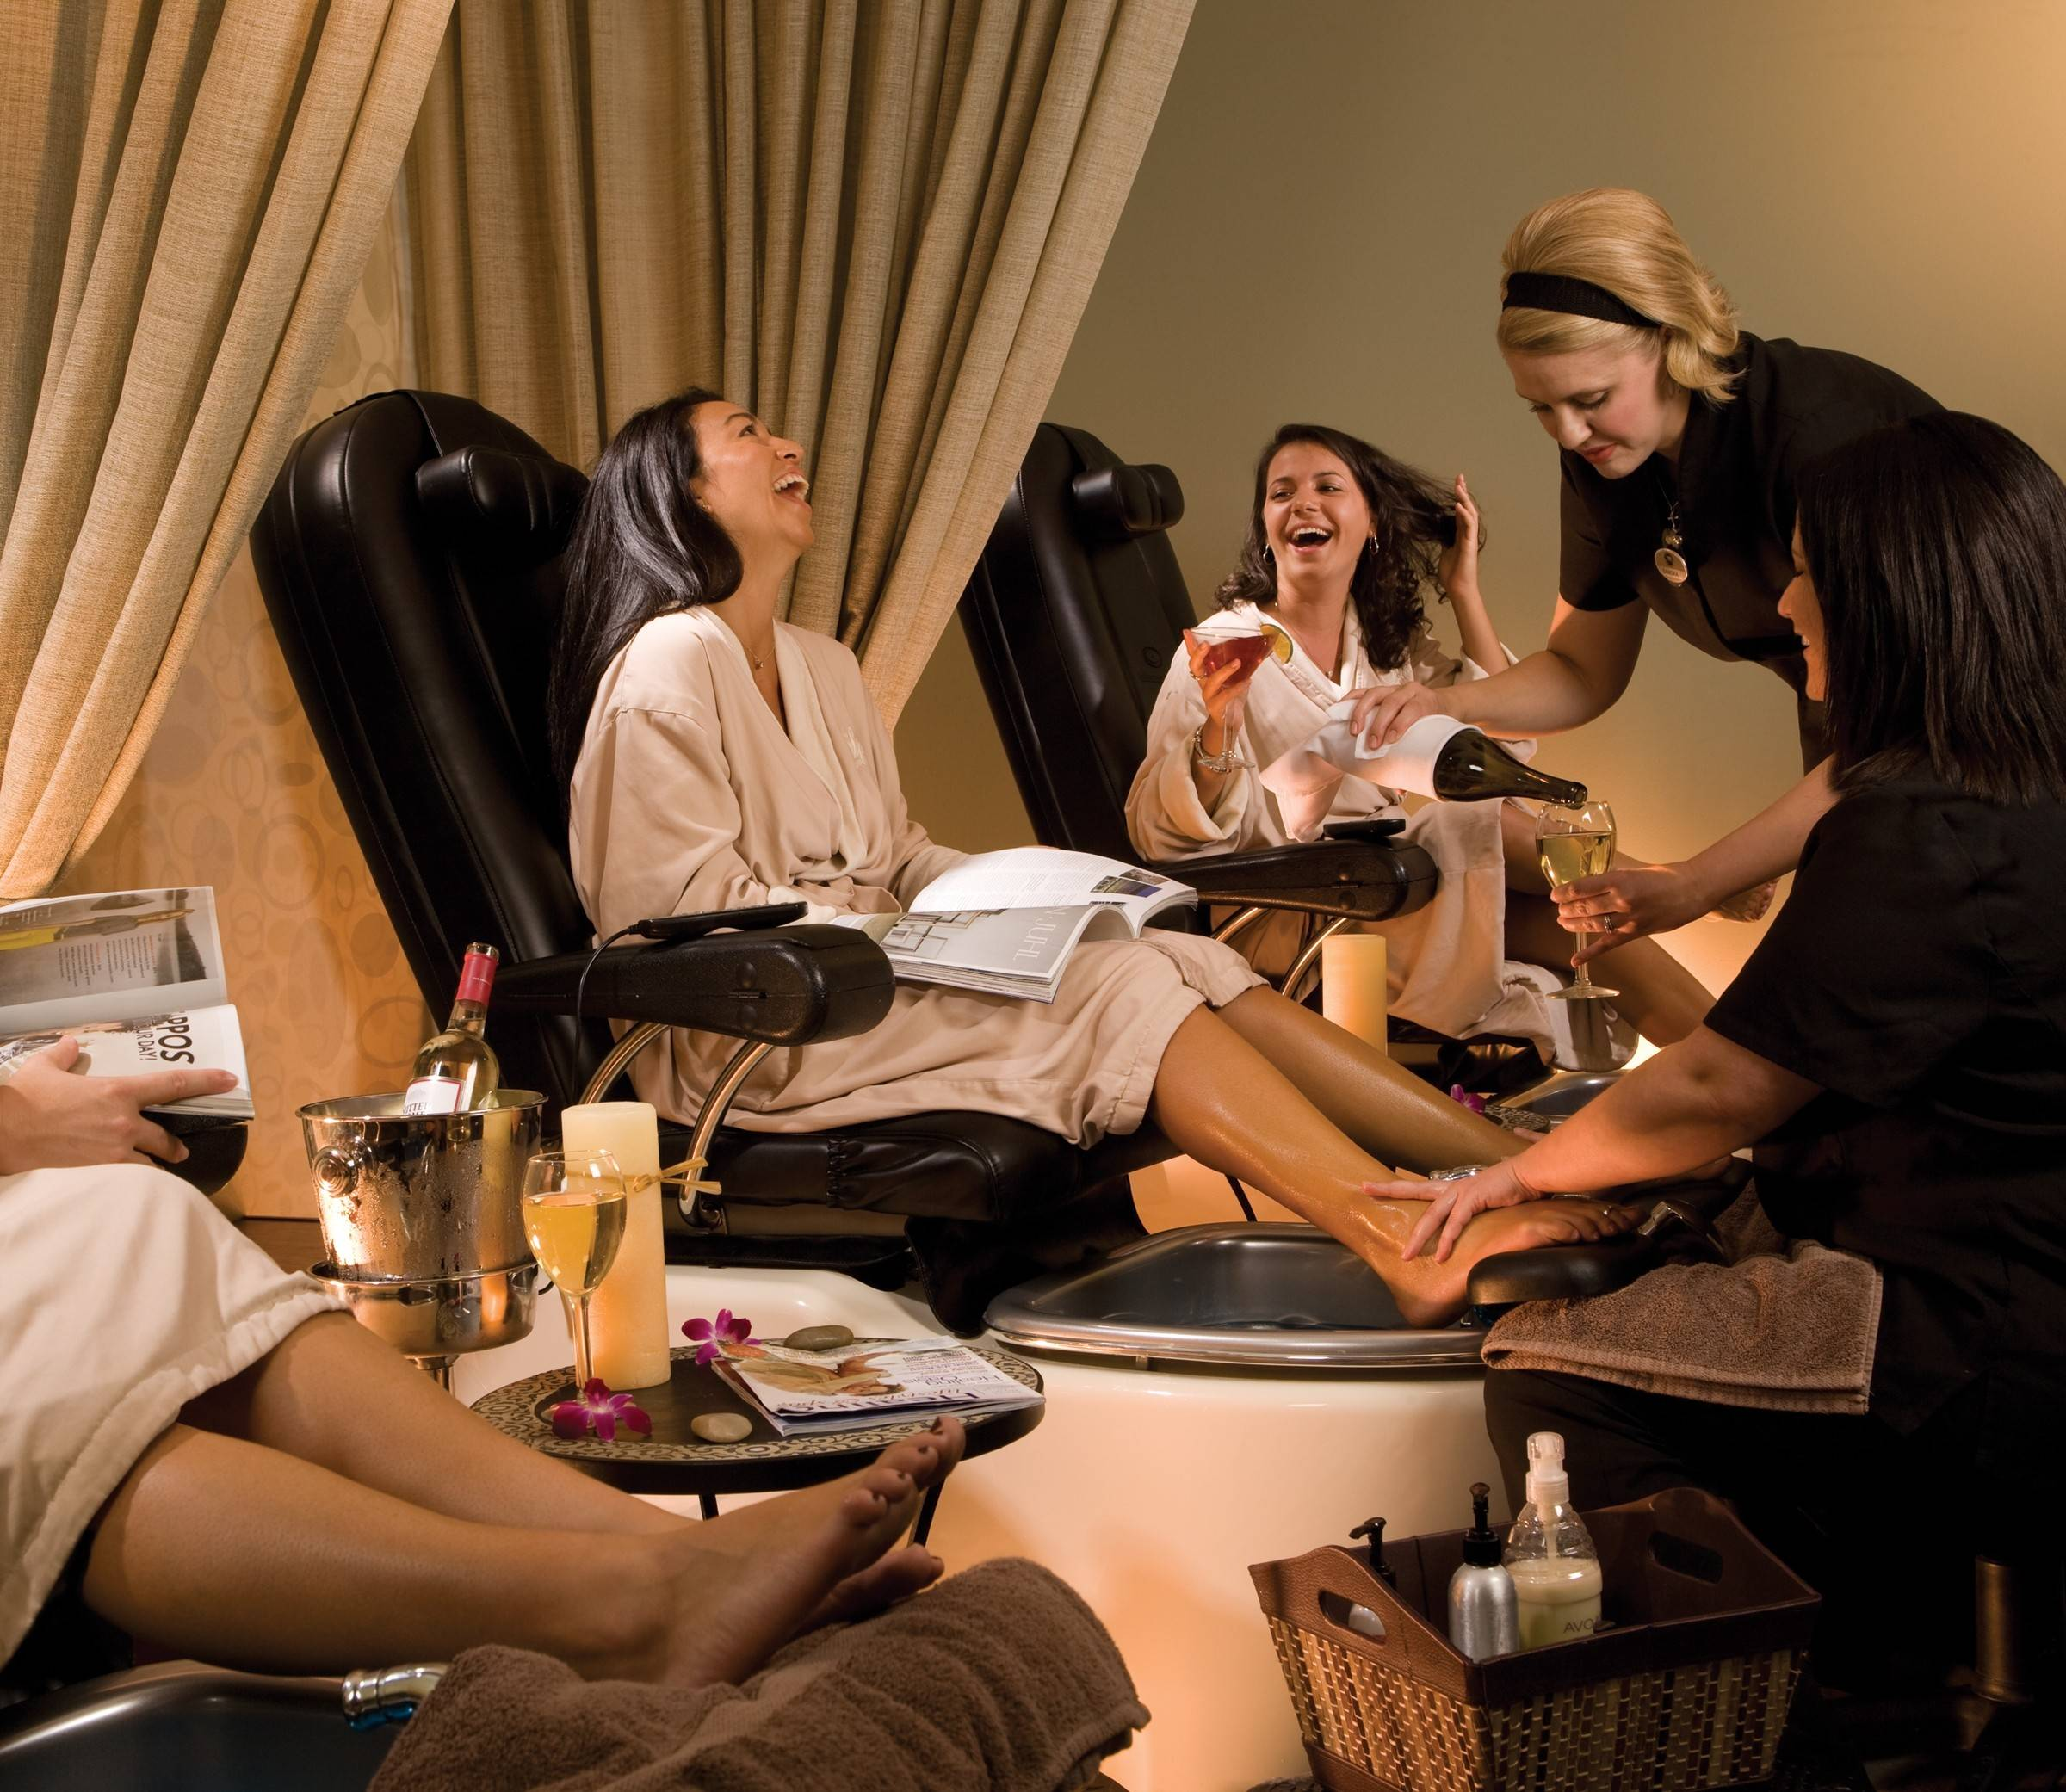 The VIP Spa & Wine Weekend Package at Grand Traverse Resort & Spa in Michigan is a great spring getaway for couples and friends.